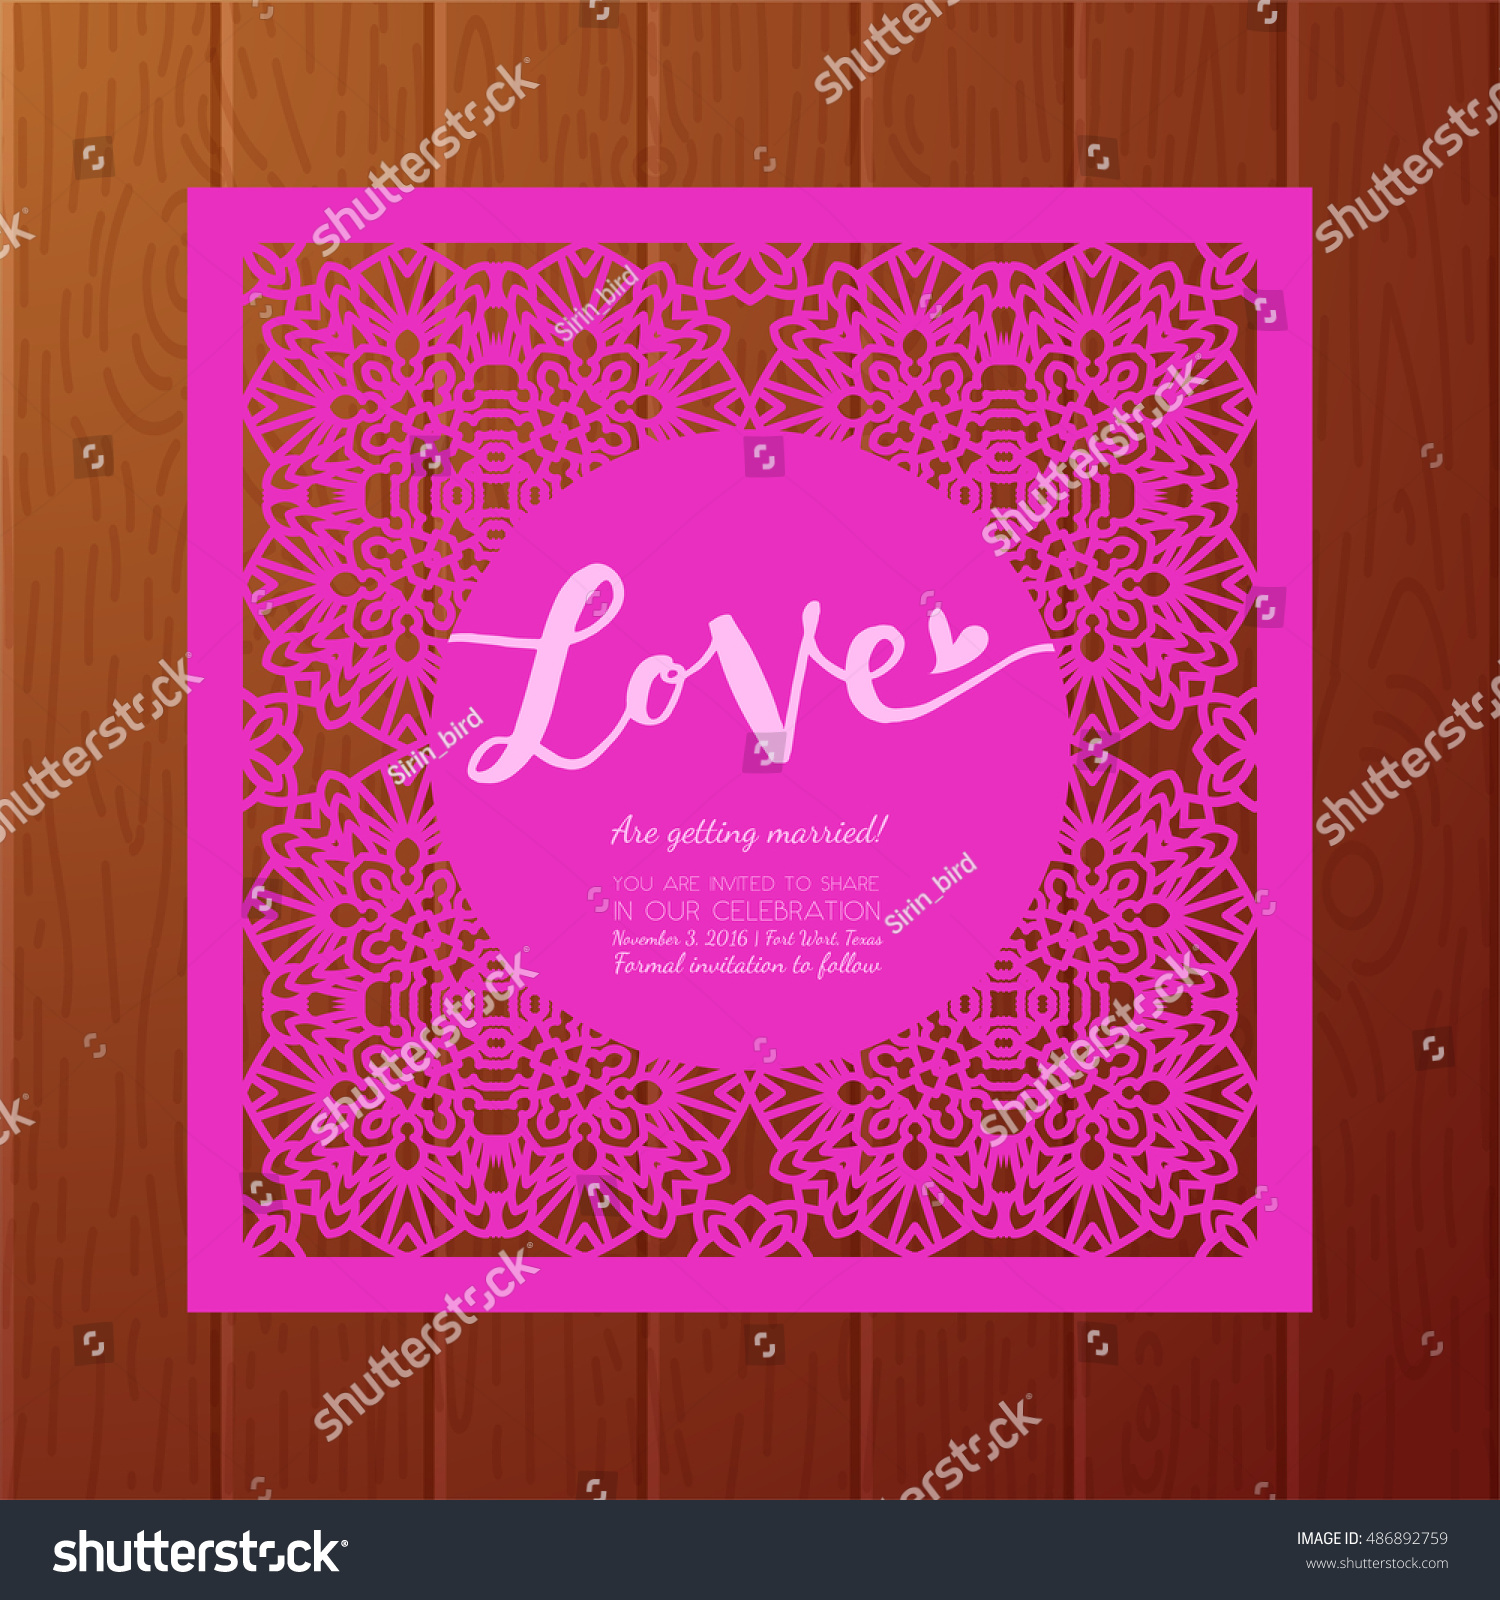 Save Date Cards Template Laser Cutting Stock Vector